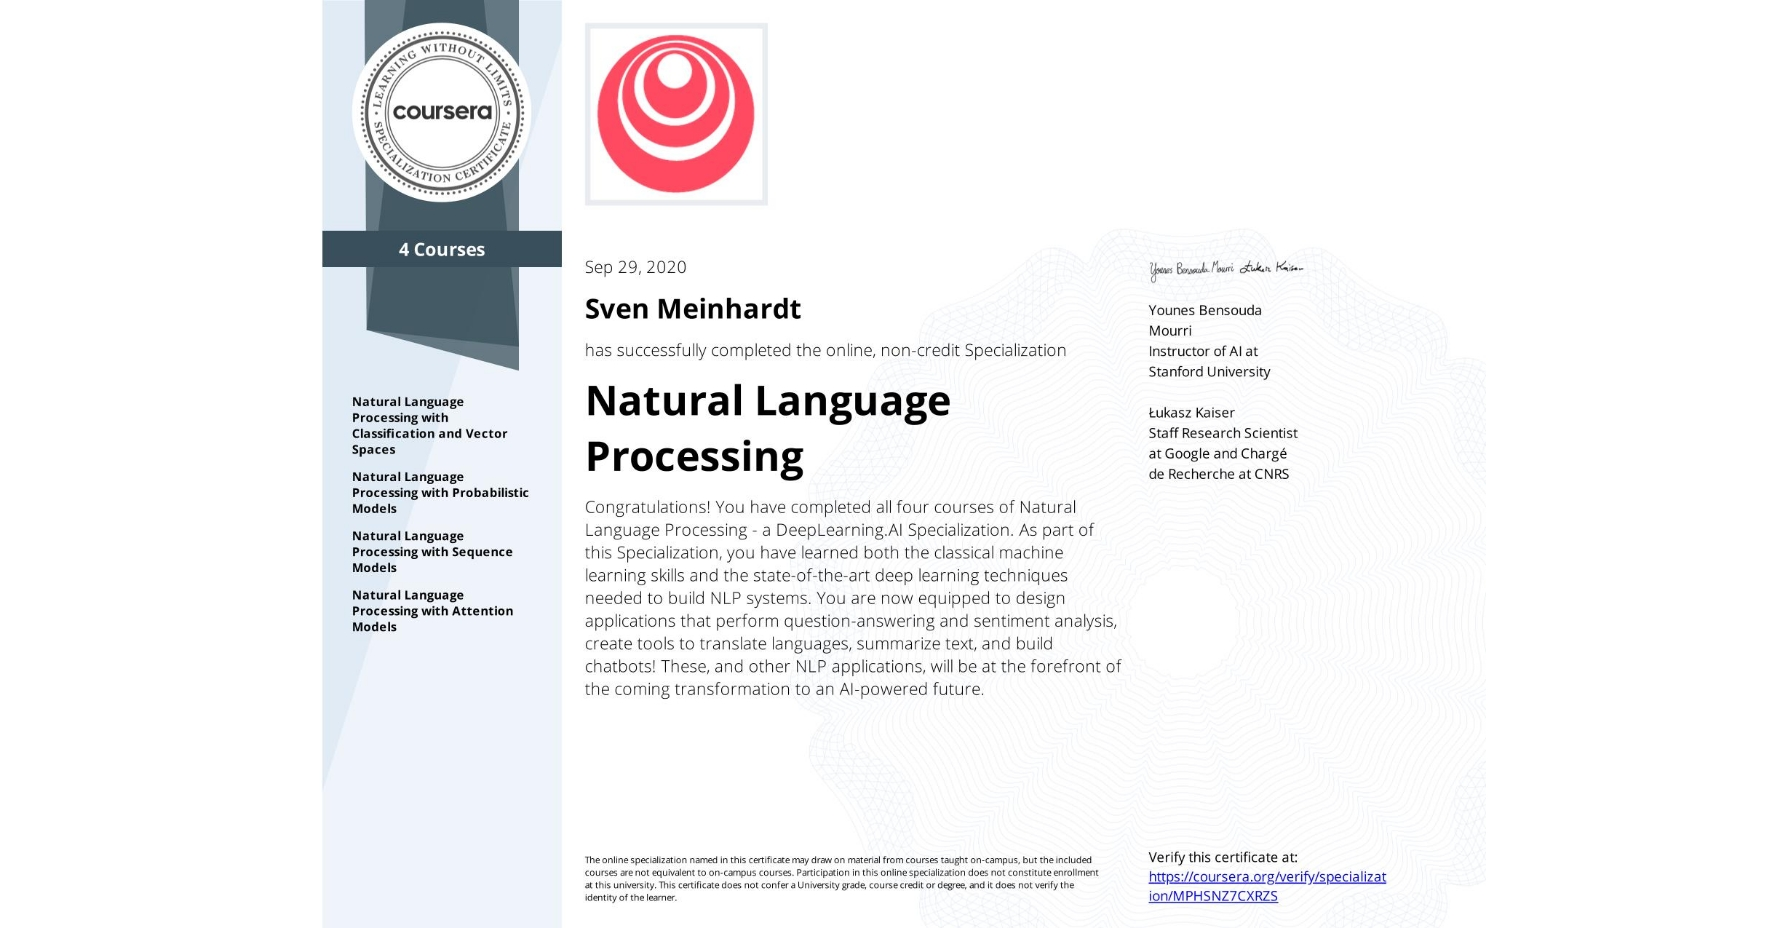 View certificate for Sven Meinhardt, Natural Language Processing, offered through Coursera. Congratulations! You have completed all four courses of Natural Language Processing - a deeplearning.ai Specialization.   As part of this Specialization, you have learned the classical machine learning skills and the state-of-the-art deep learning techniques needed to build NLP systems. You are now equipped to design applications that perform question-answering and sentiment analysis, create tools to translate languages and summarize text, and build chatbots!   These, and other NLP applications, are going to be at the forefront of the coming transformation to an AI-powered future.